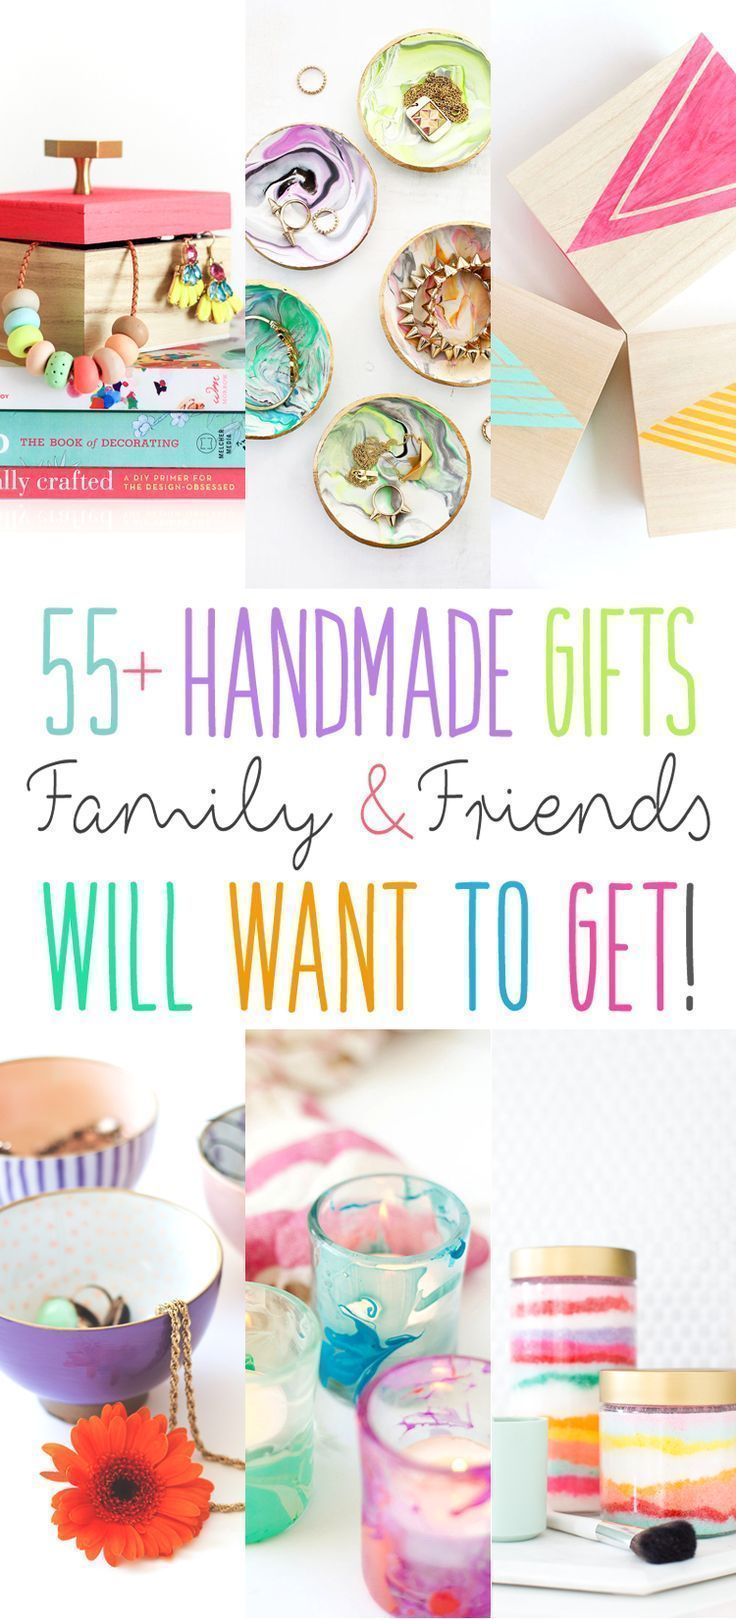 55+ Handmade Gifts Family and Friends will WANT to get